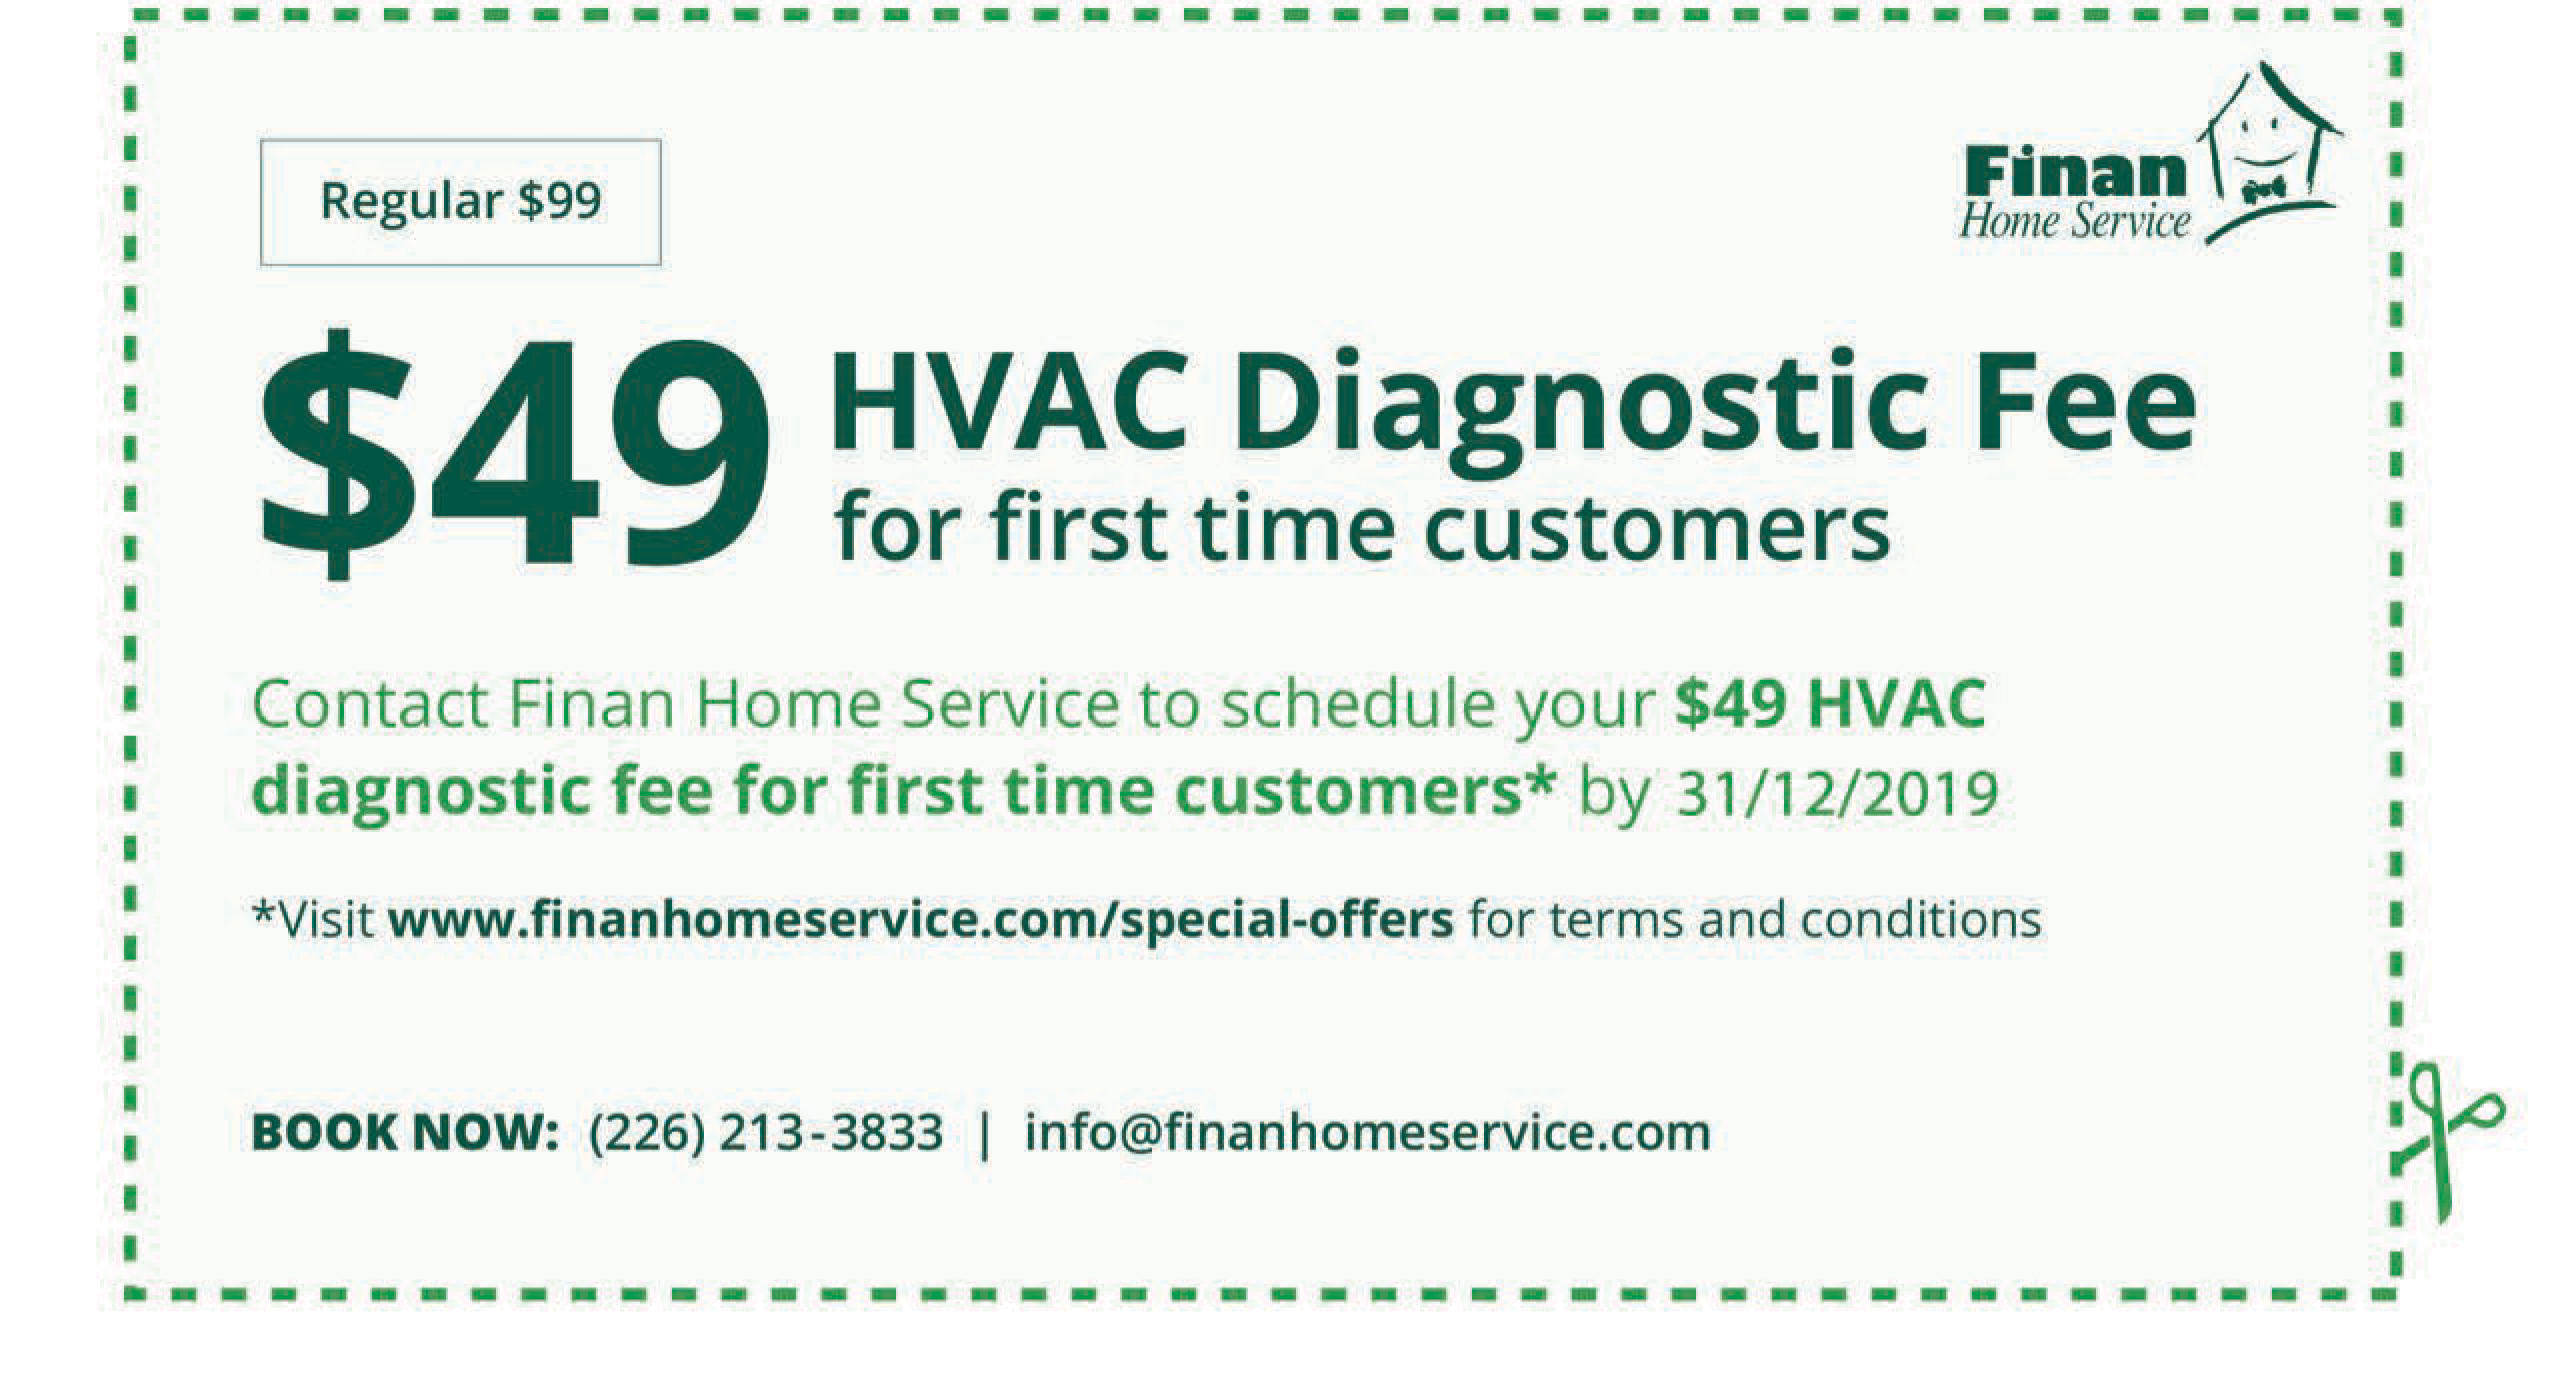 $49 HVAC Diagnostic Fee For First Time Customers